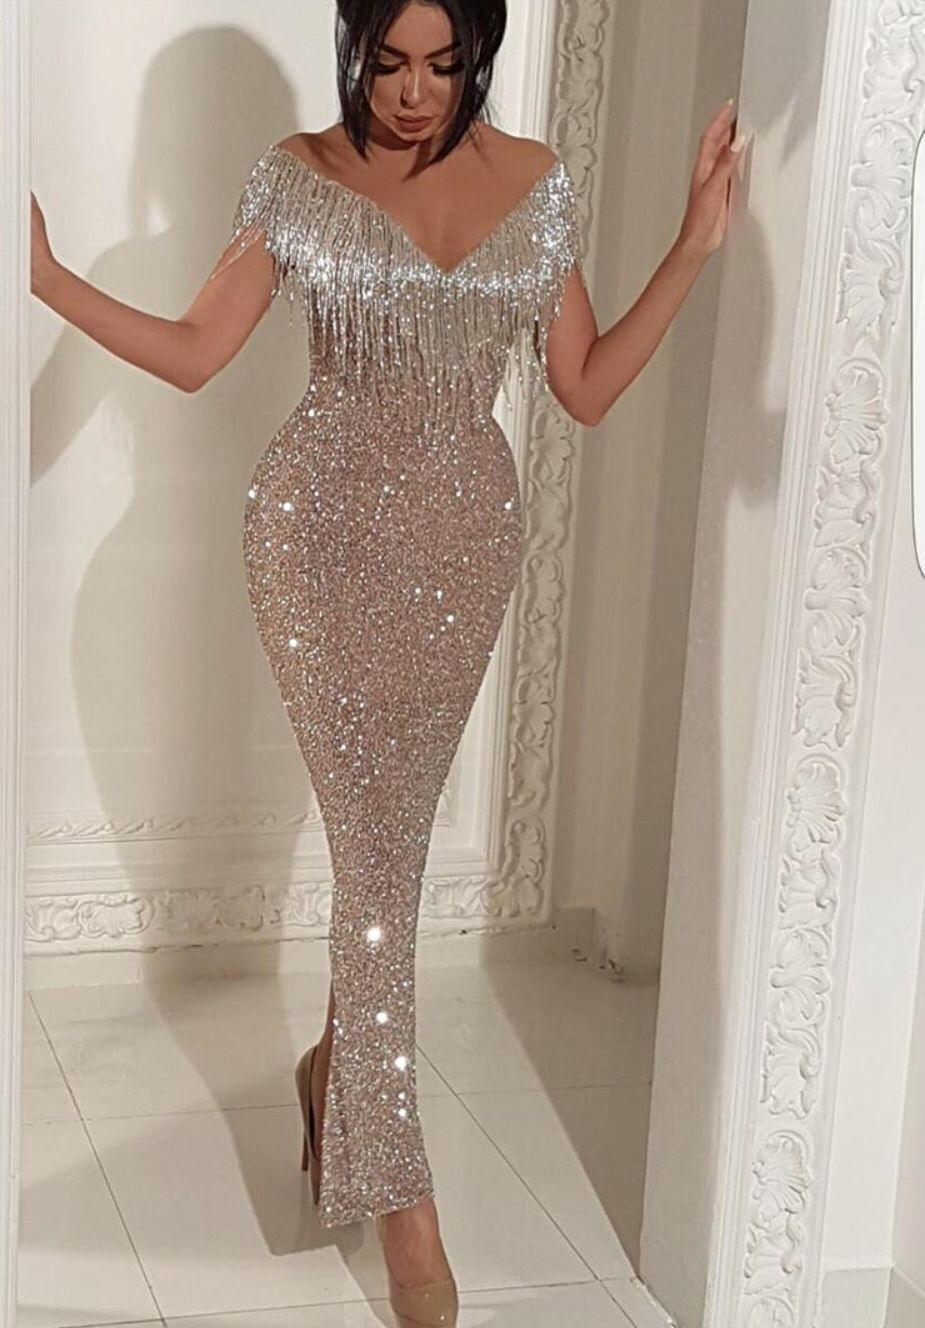 Purple Hottest Party Dress Prom Dresses 2019 Vestidos De Gala Long Sexy Sheath Sweetheart Open Back Sequin Rhinestone Beads With Traditional Methods Prom Dresses